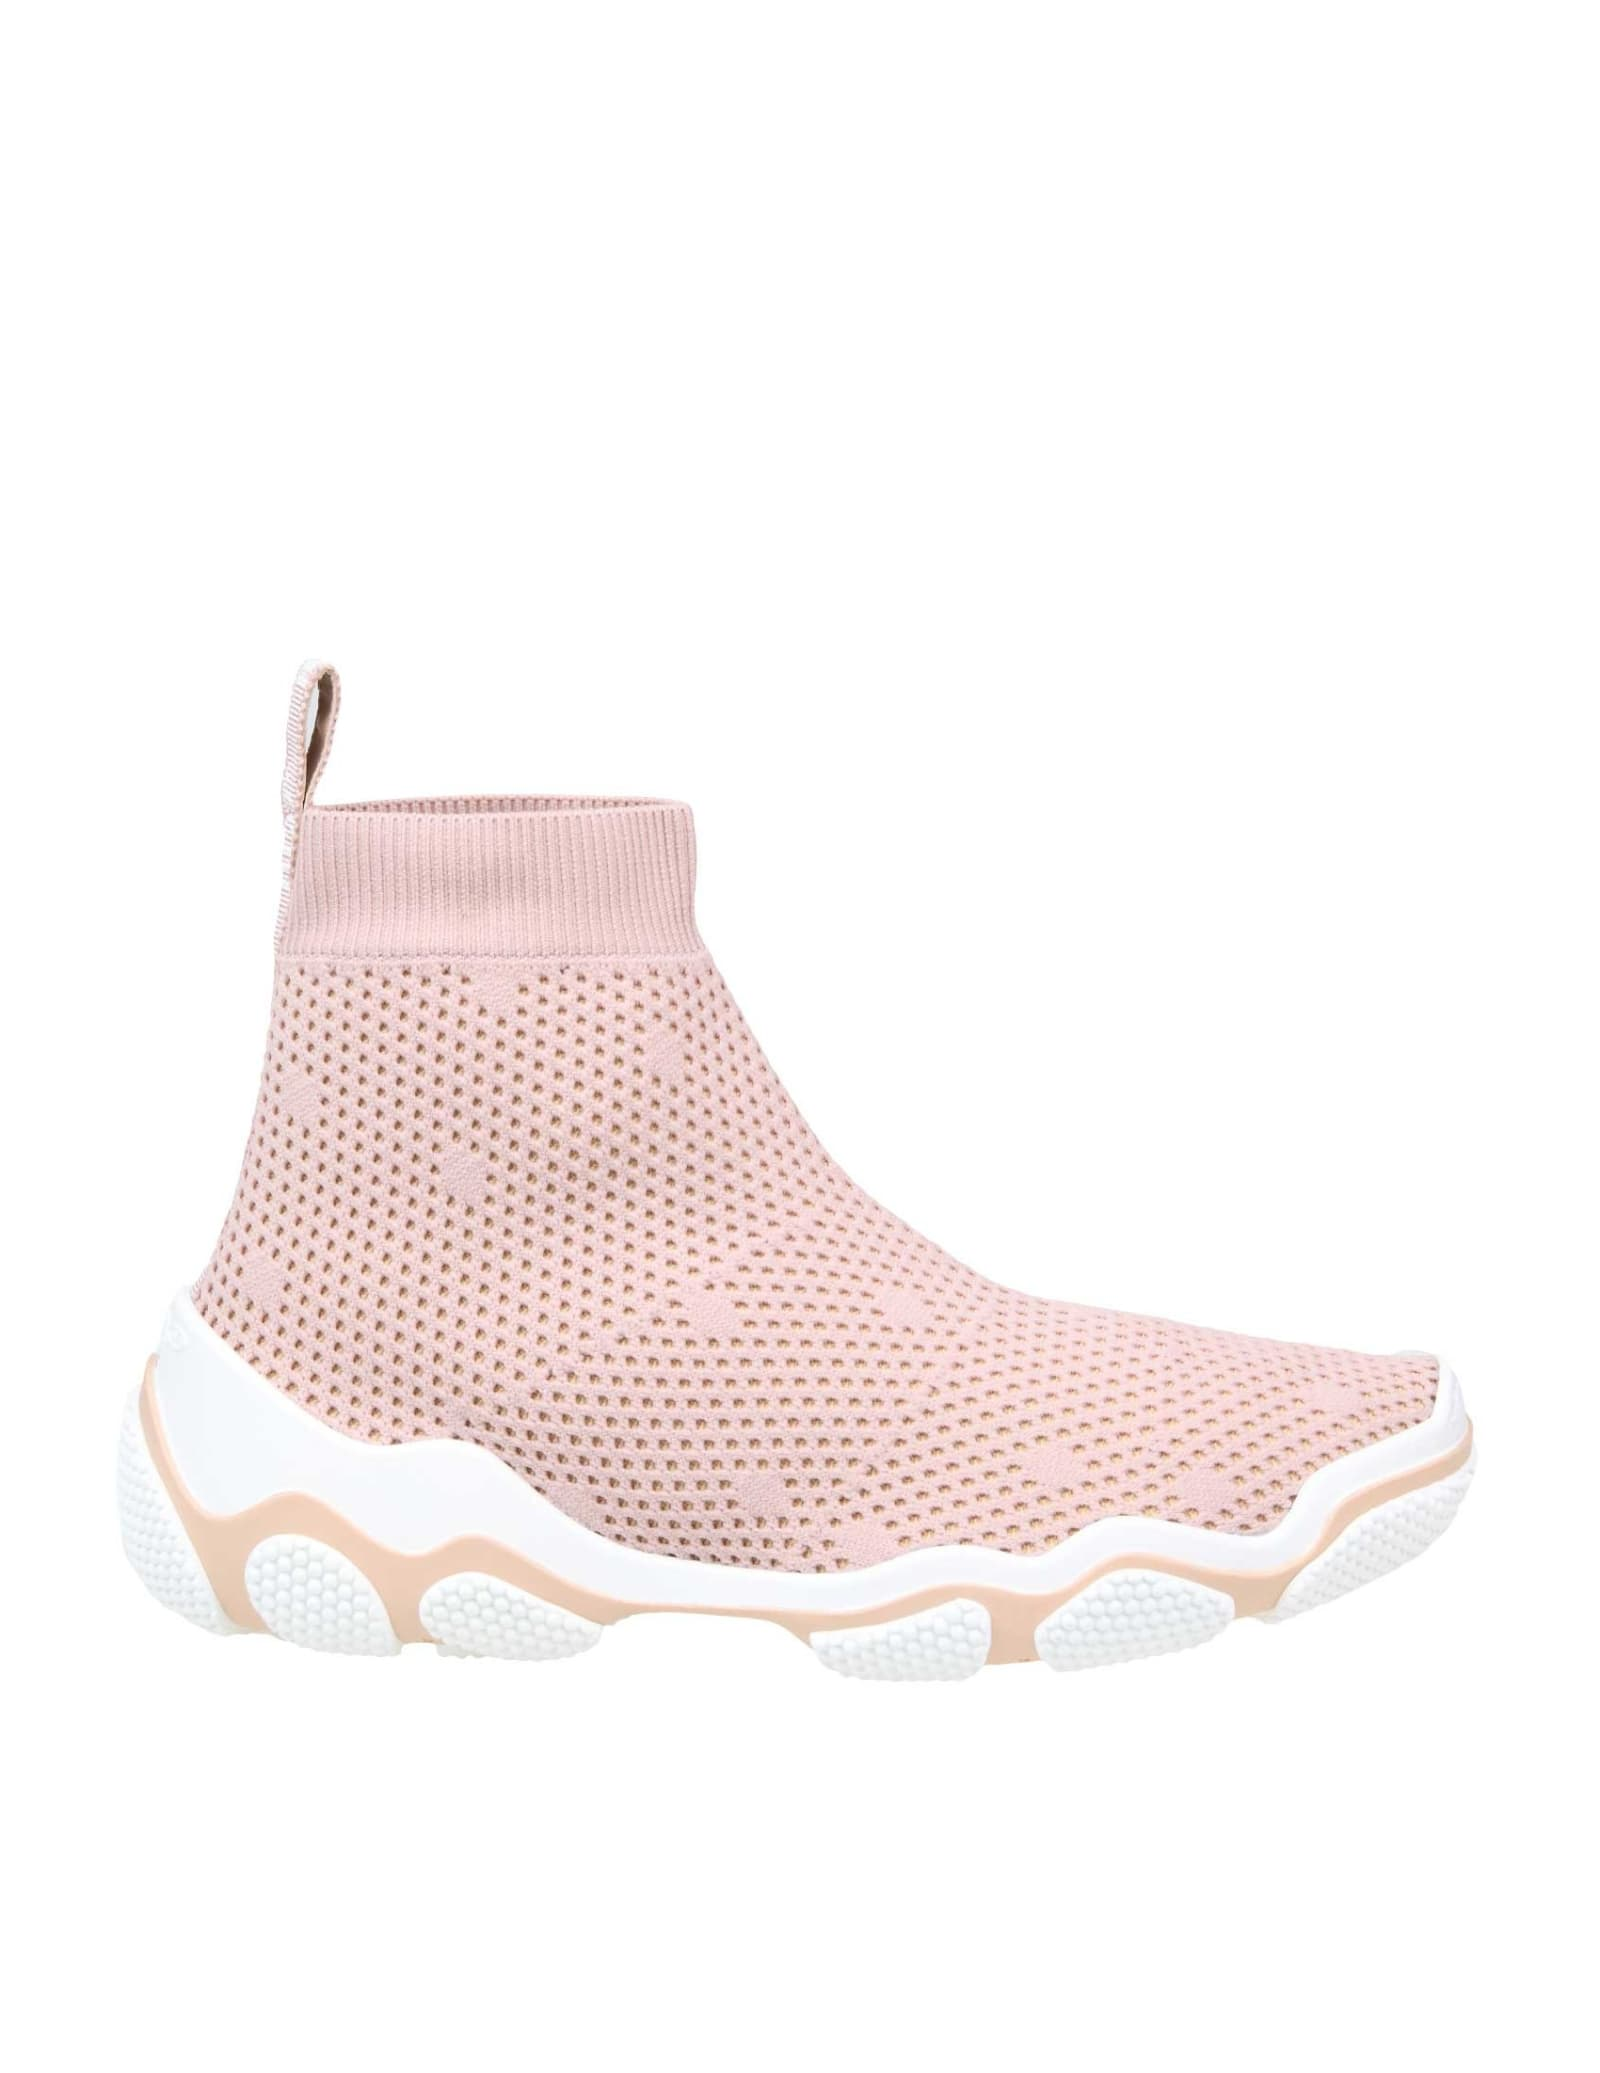 Stretch knit sneakers pink color model with round tip ribbon with logo on the part of the heel knitted interior rubber sole composition: elastic mesh